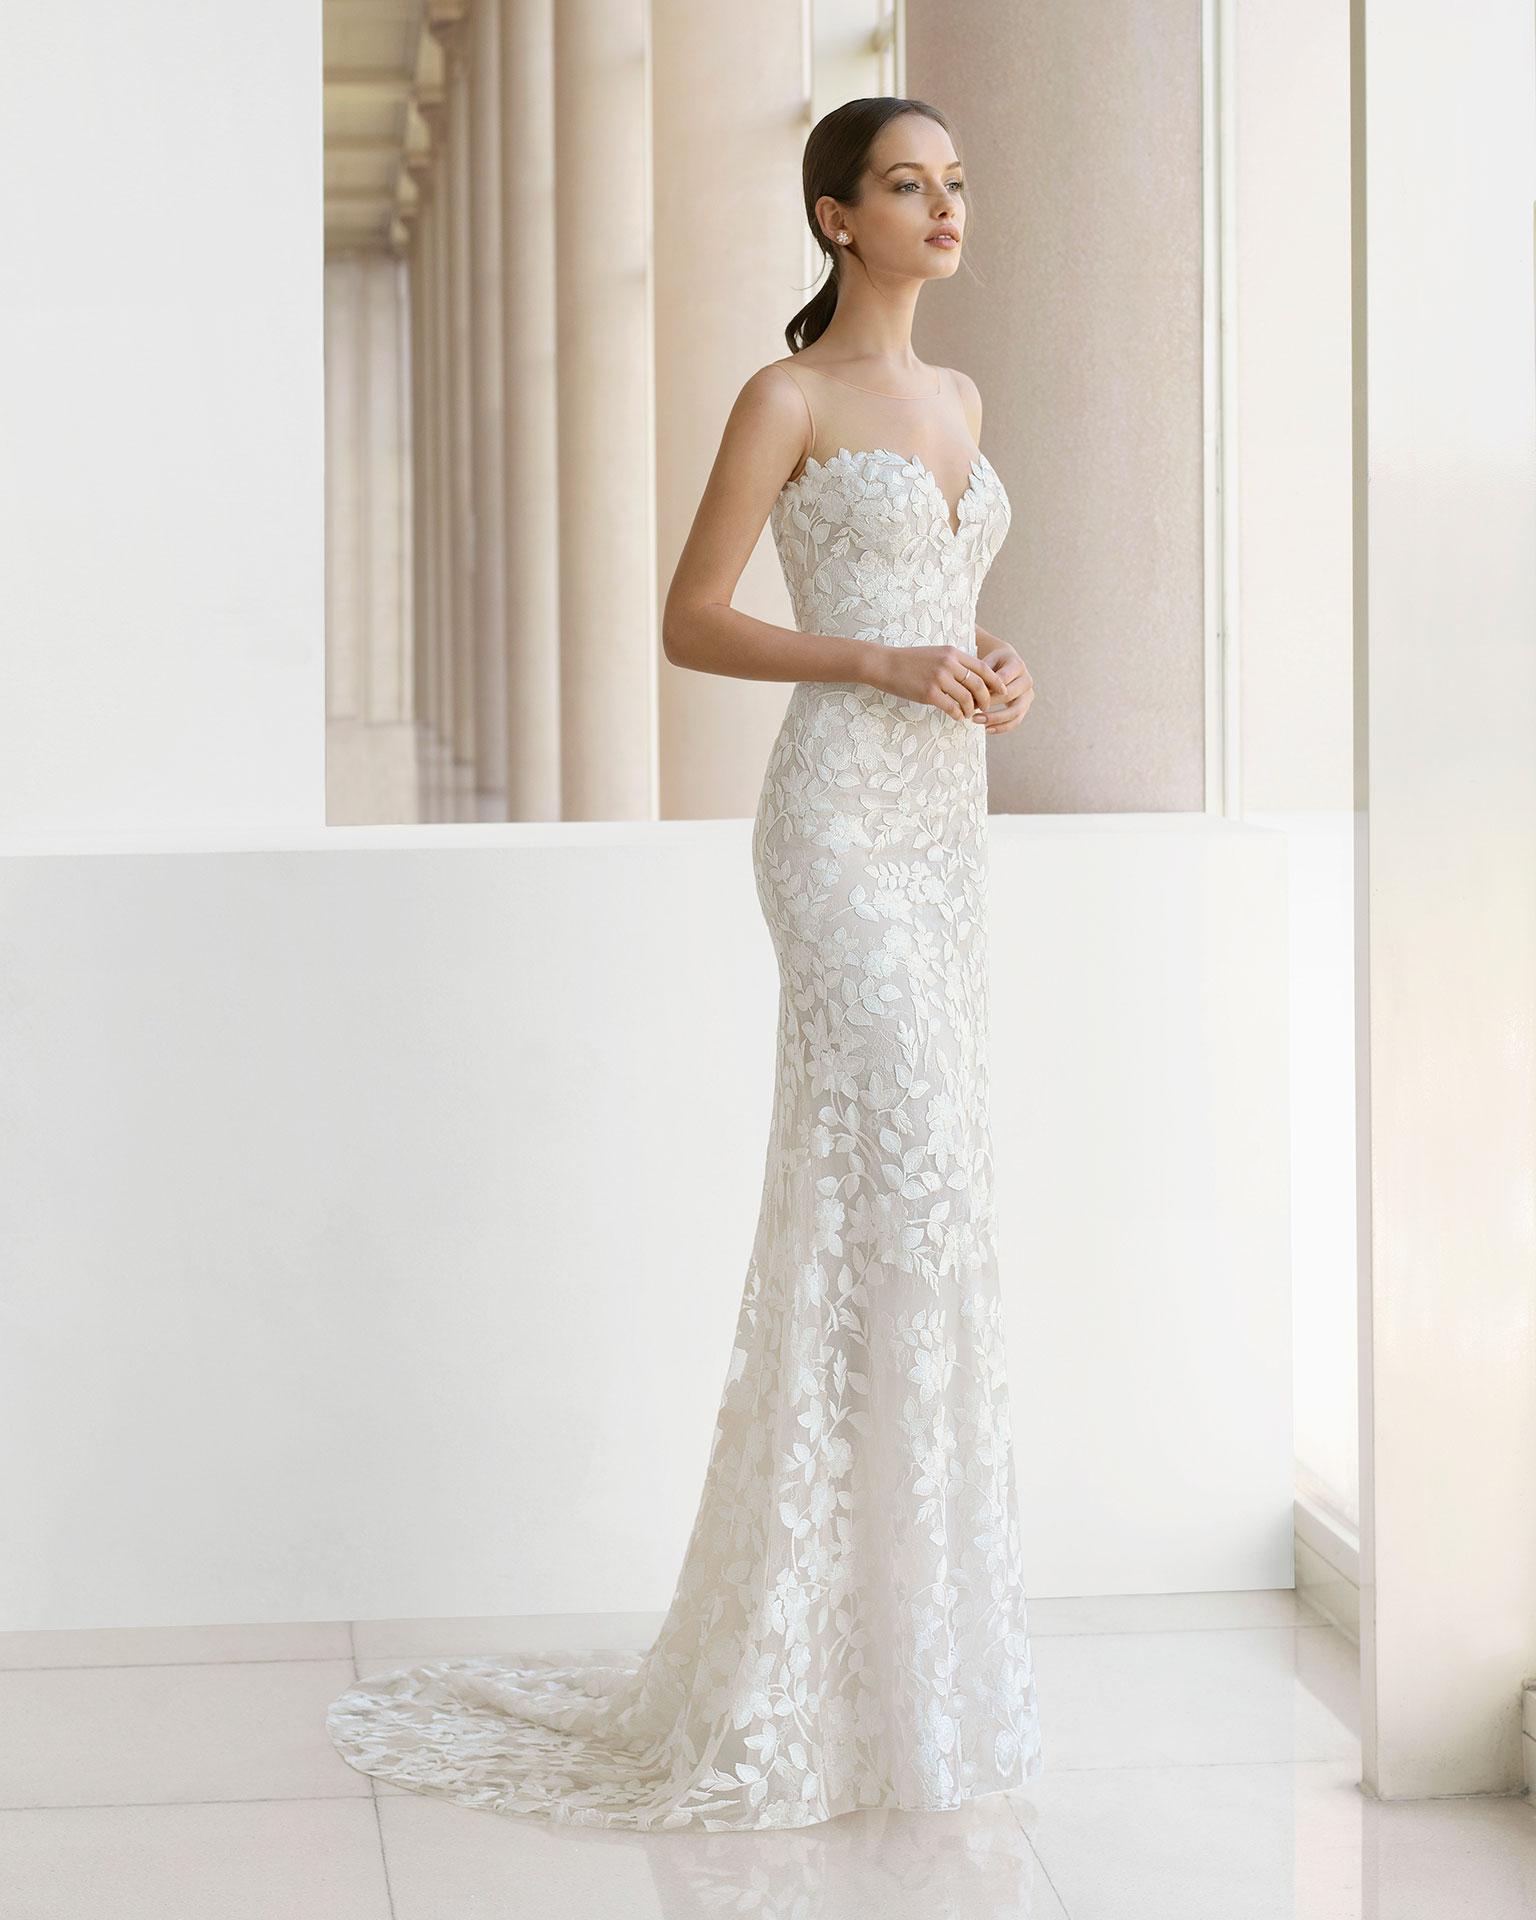 ea8ae813515e6 Wedding Gown Rental/ Purchases — blessed brides